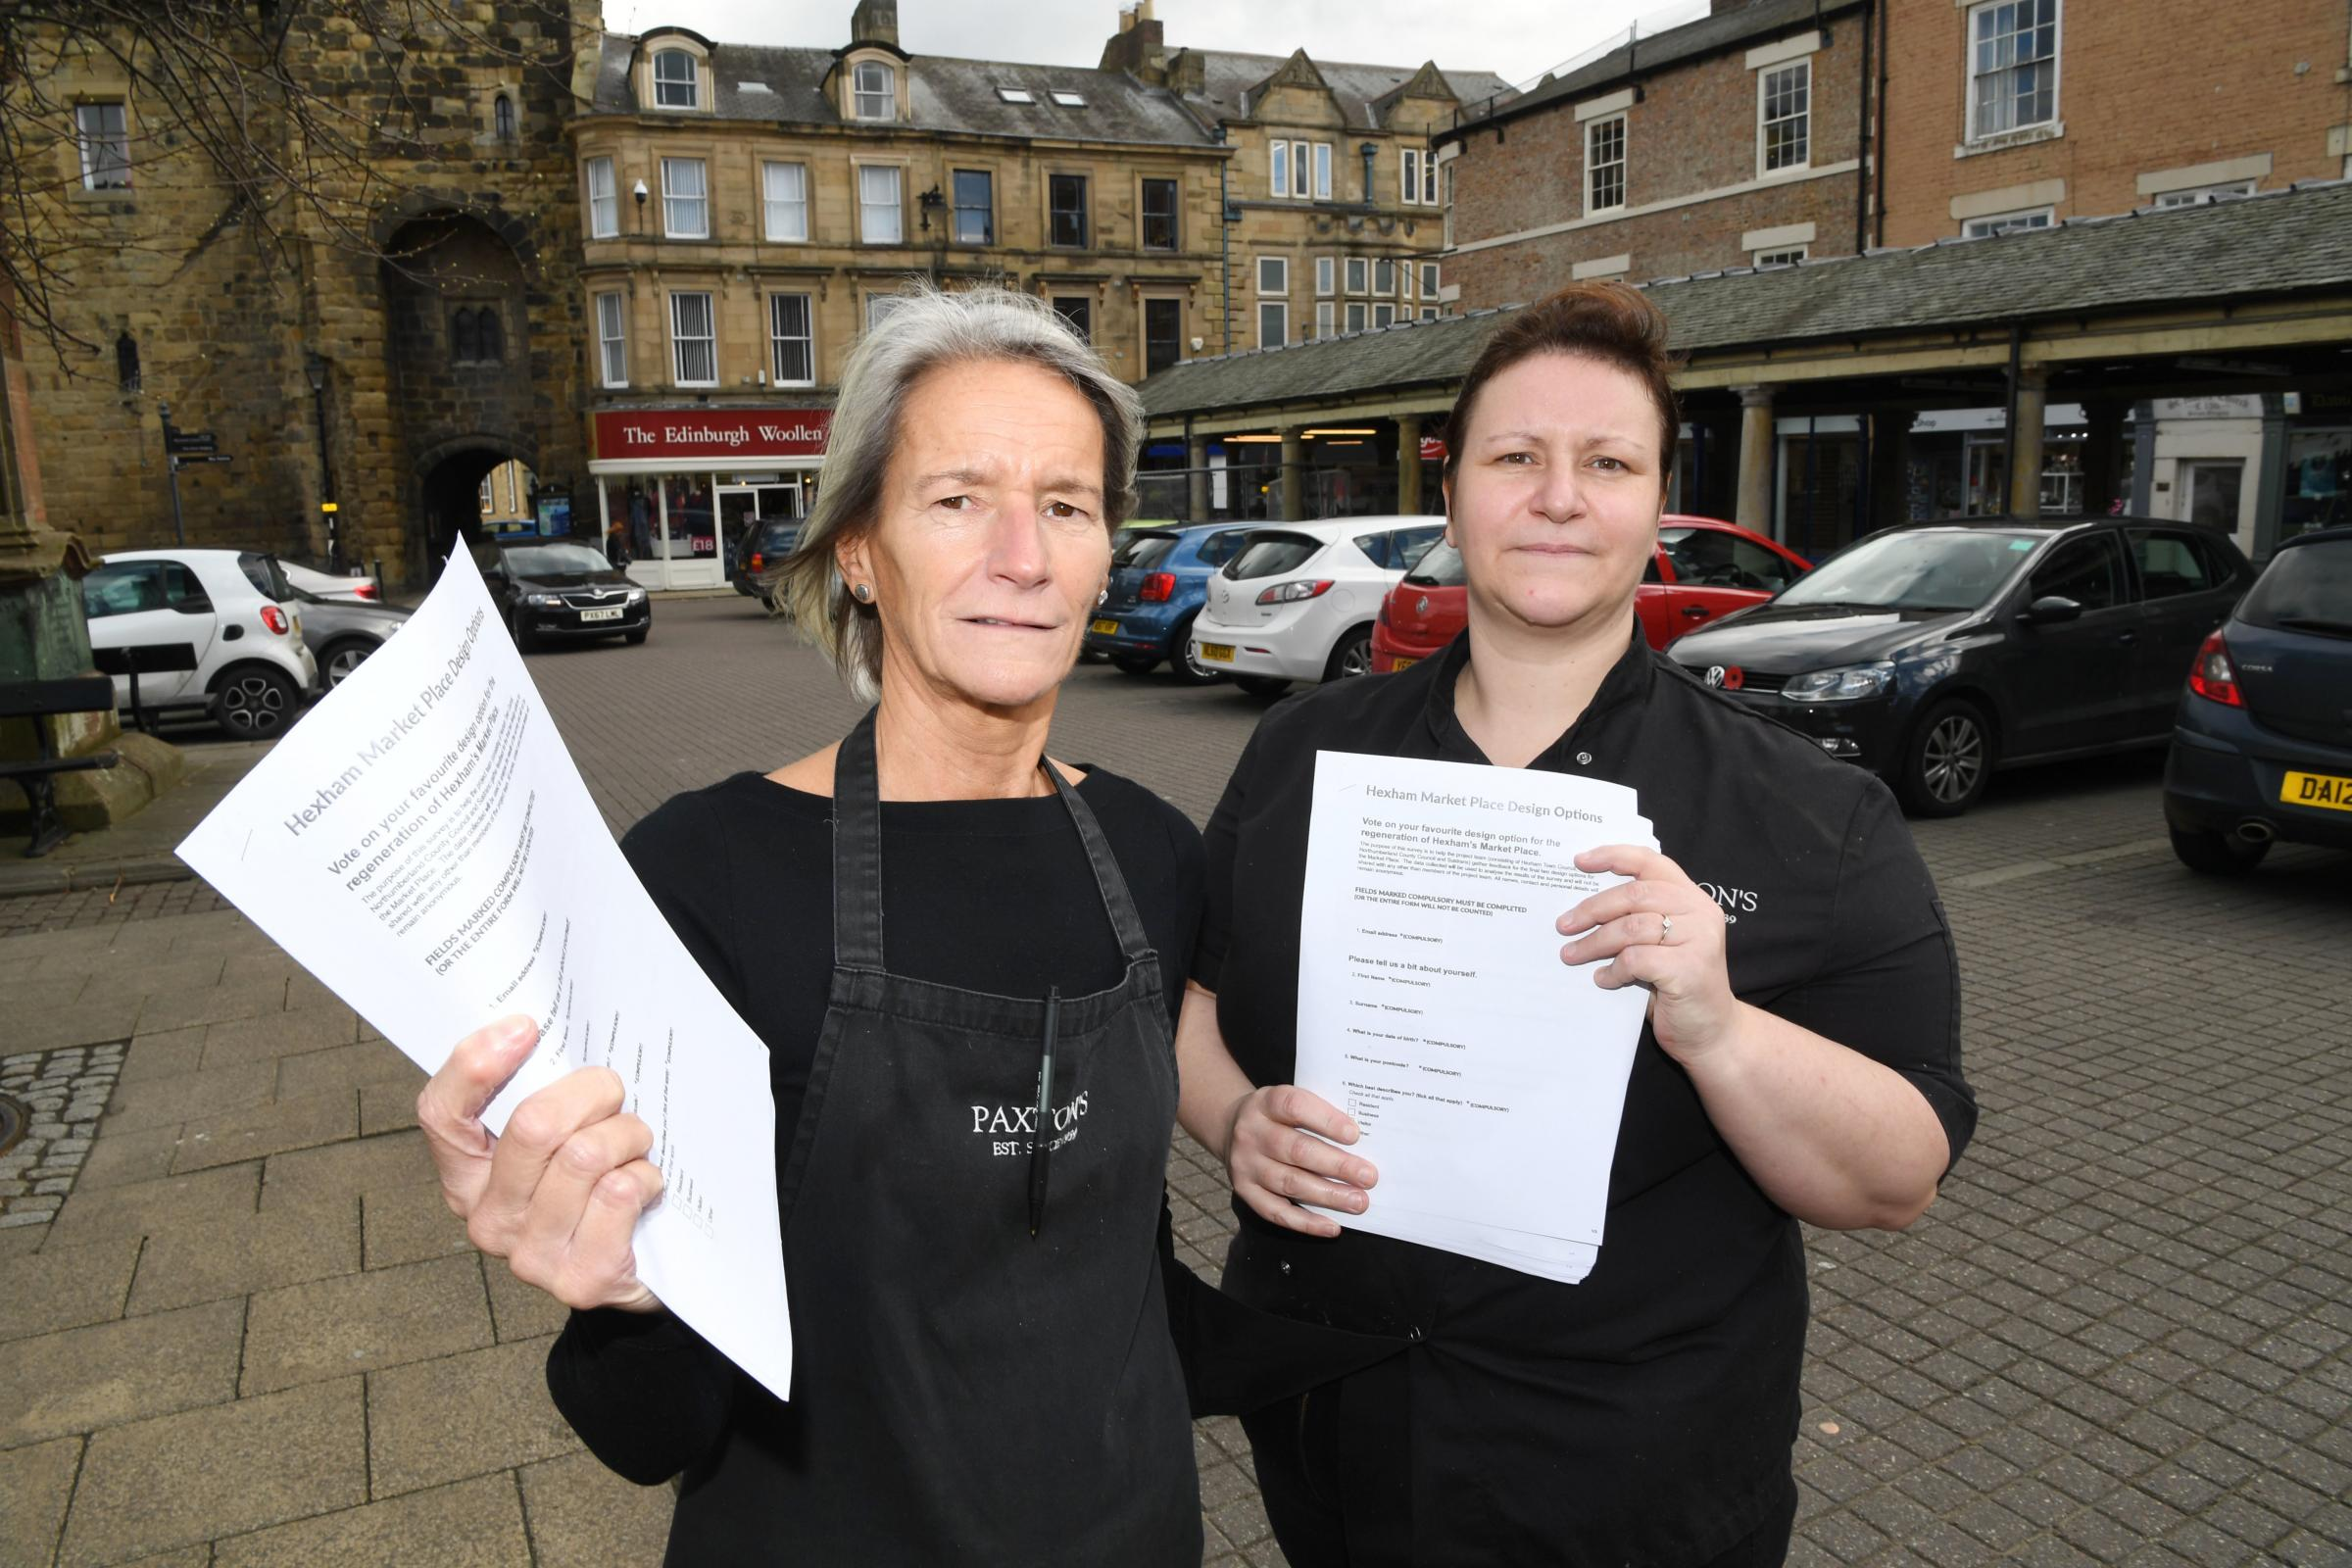 Lorna and Natalie Paxton with the petitions against the pedestrianisation of Hexham Market Place.    Photo: HX111968